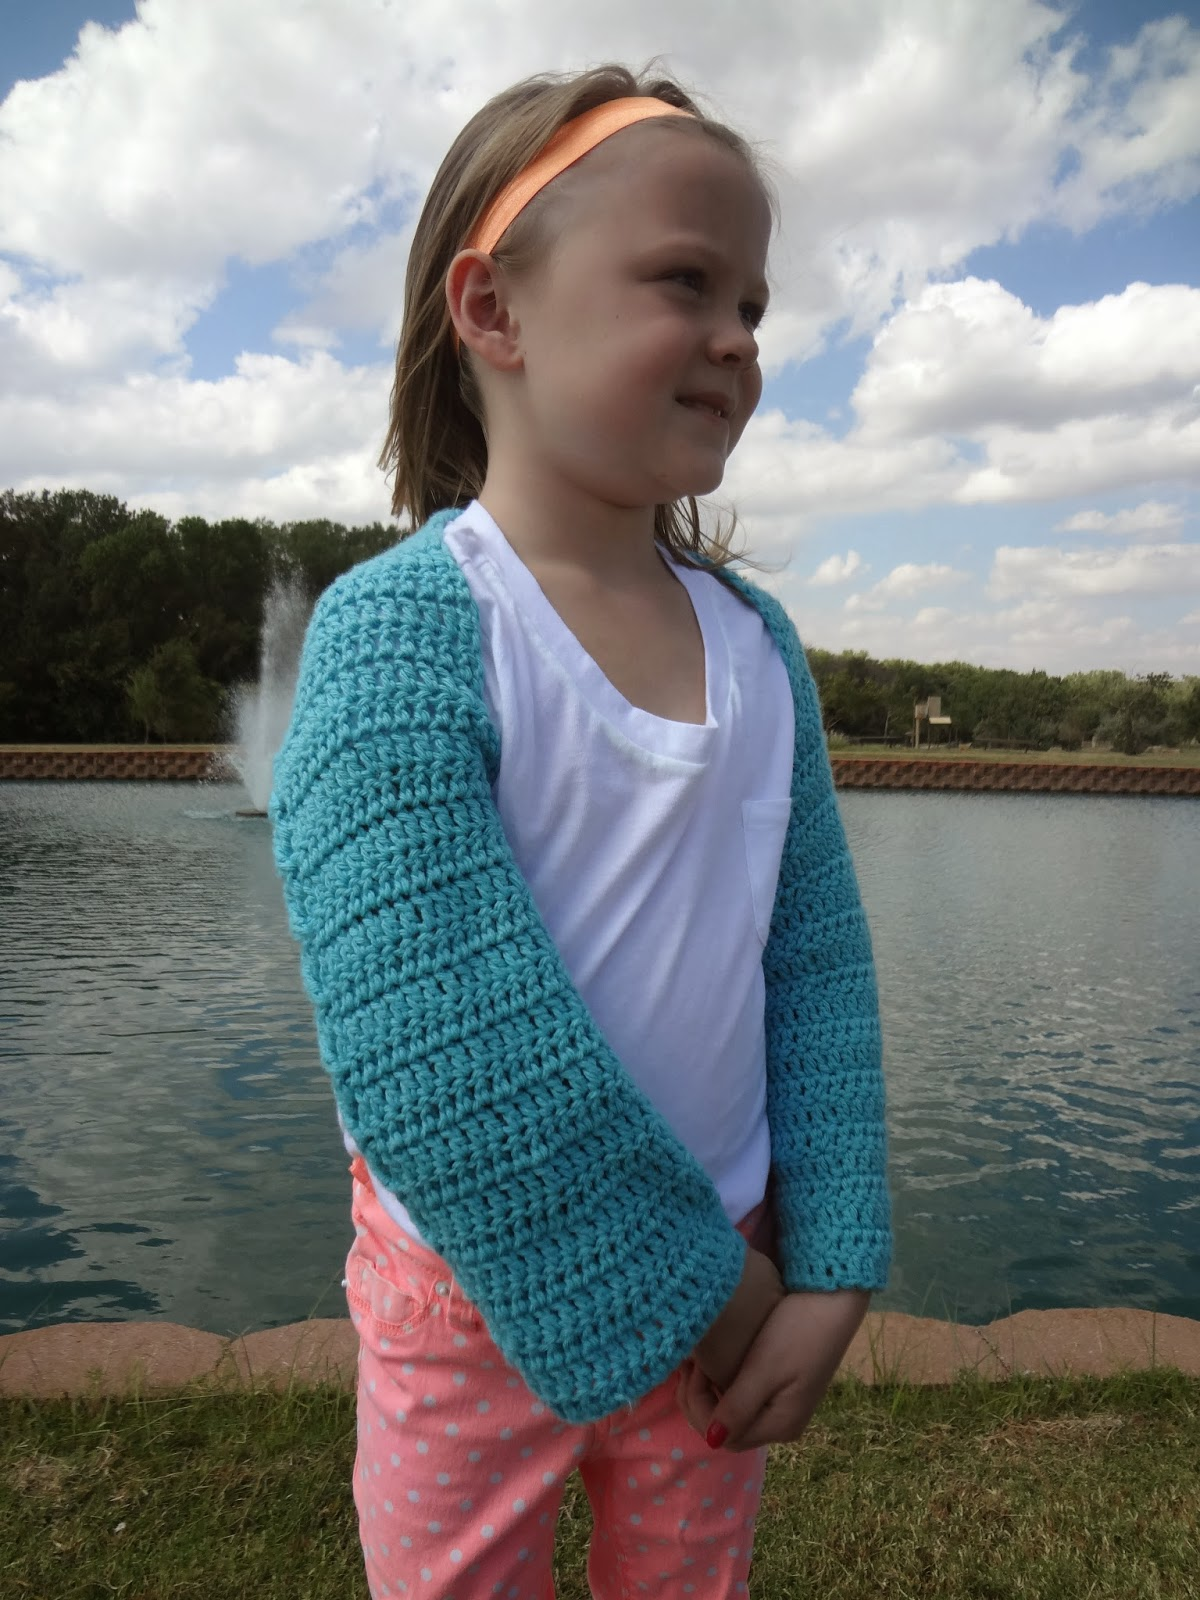 Child wearing a turquoise crochet shrug, white t-shirt, and orange pants standing in front of a pond with fountain. Free crochet pattern.